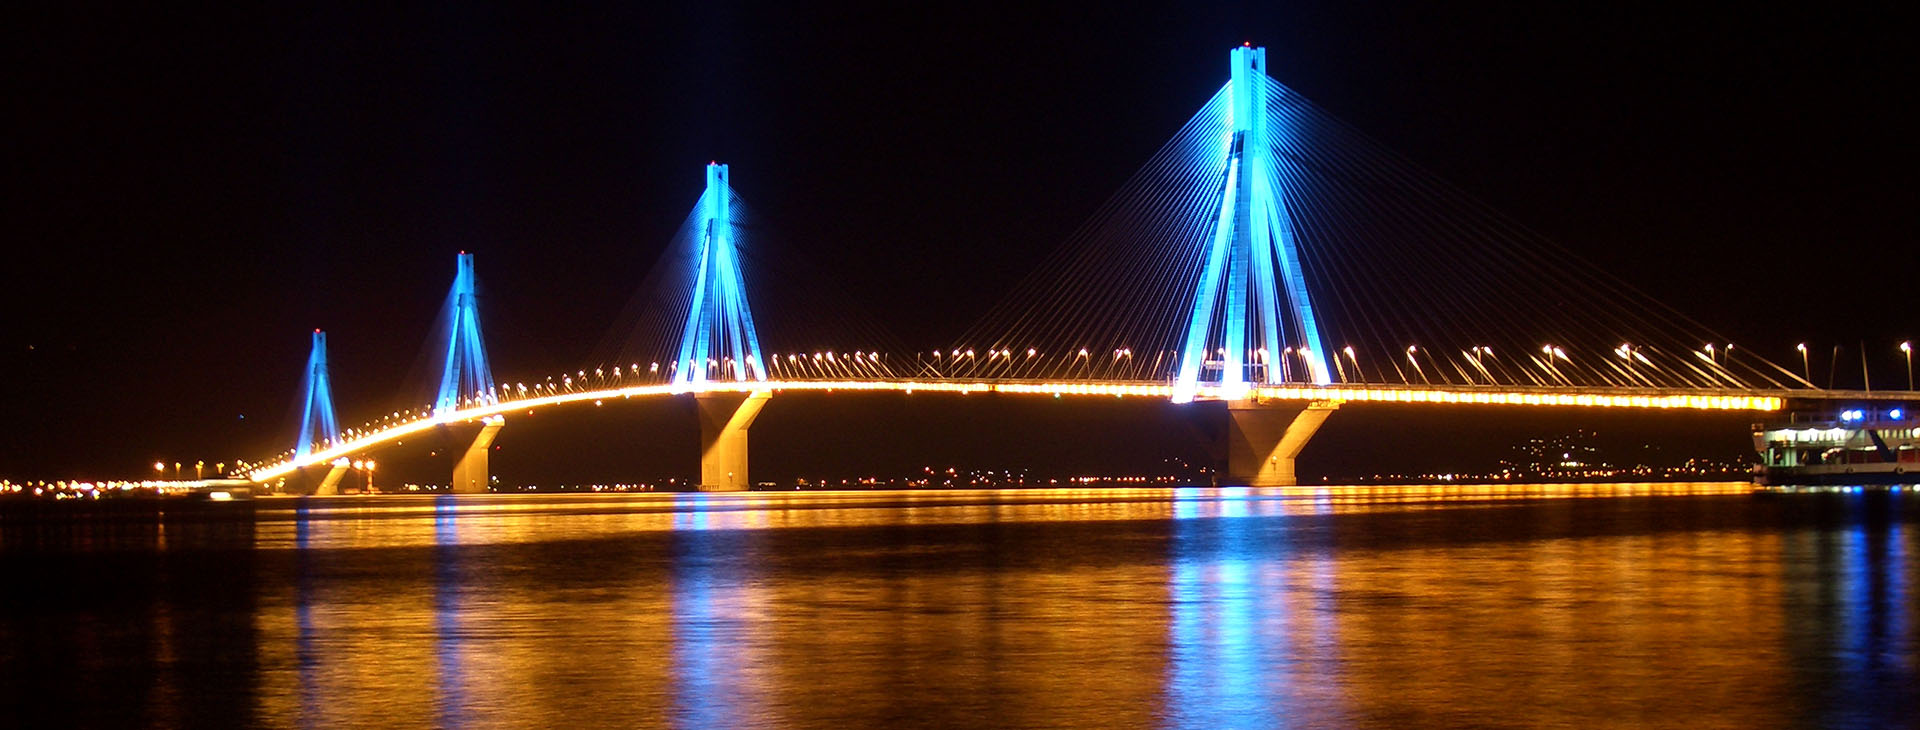 Rio-Antirio bridge by night, Ahaia